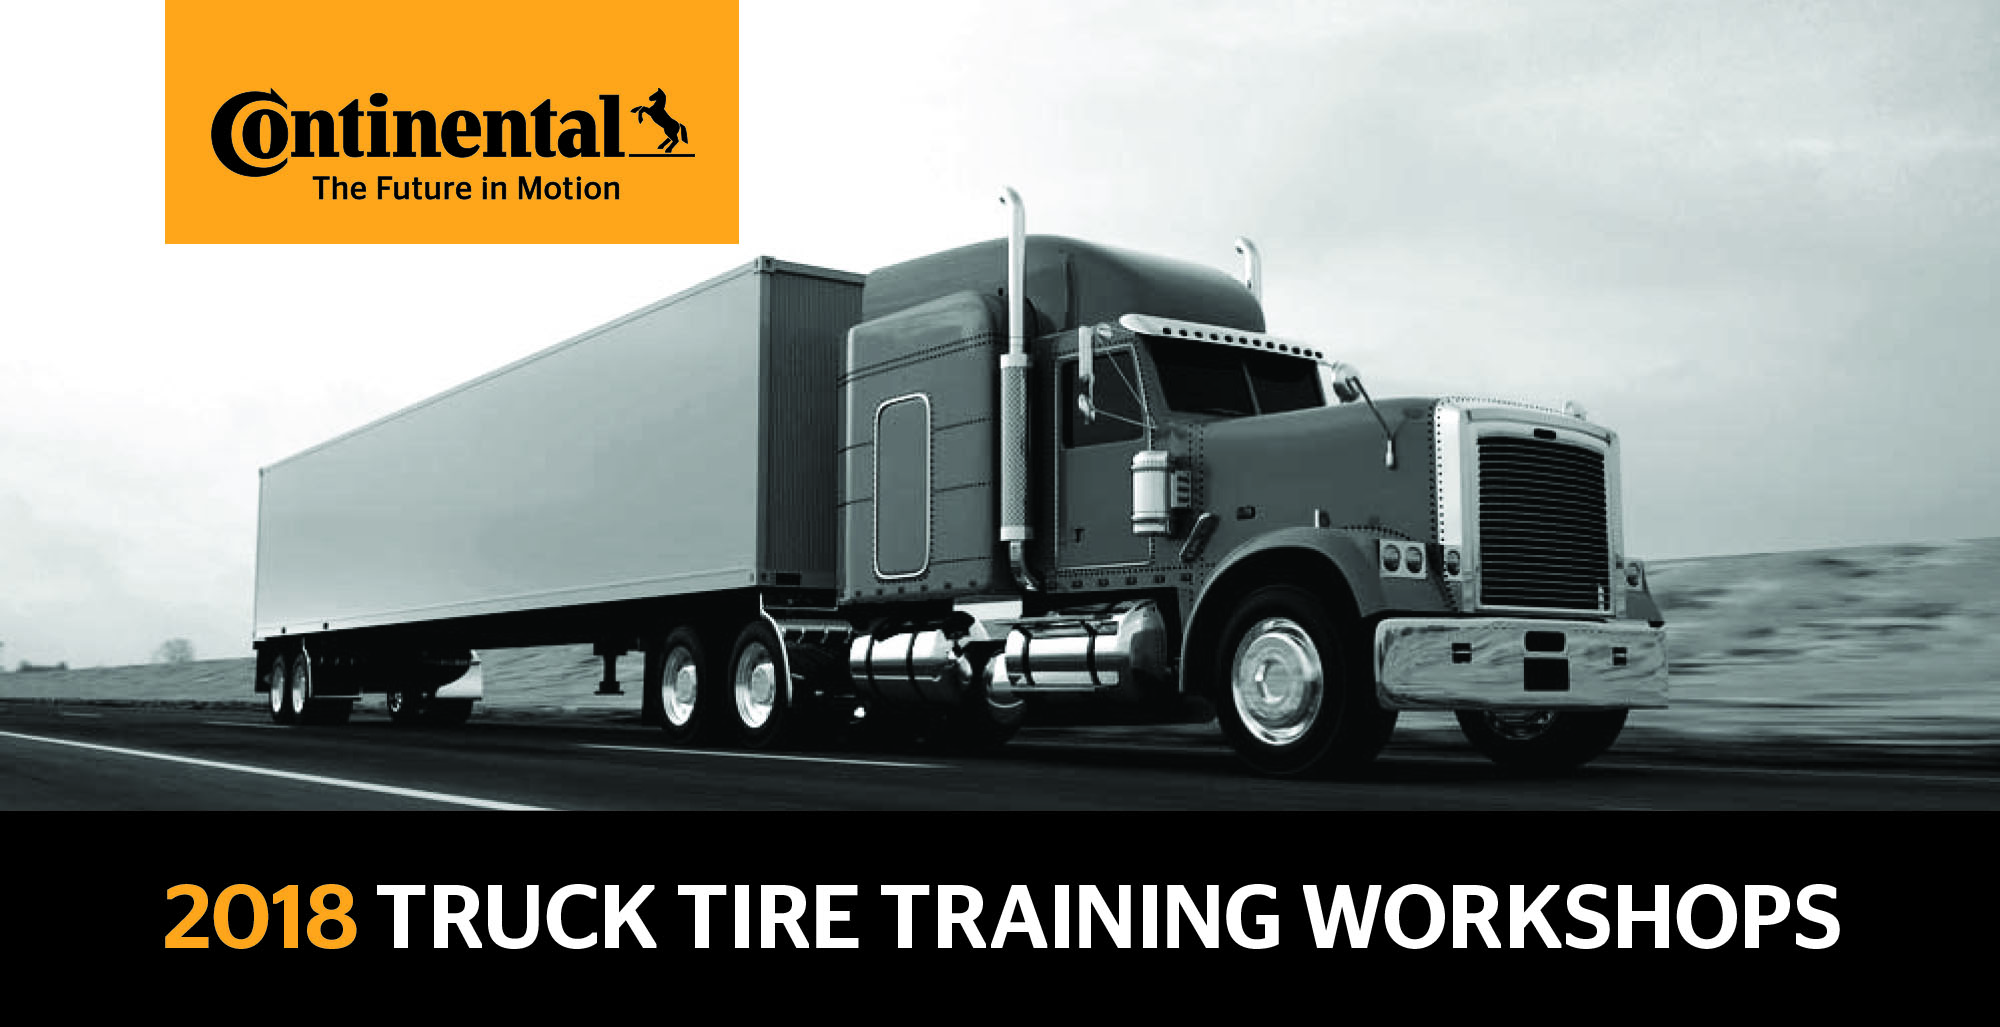 2018 Truck Tire Training Workshops